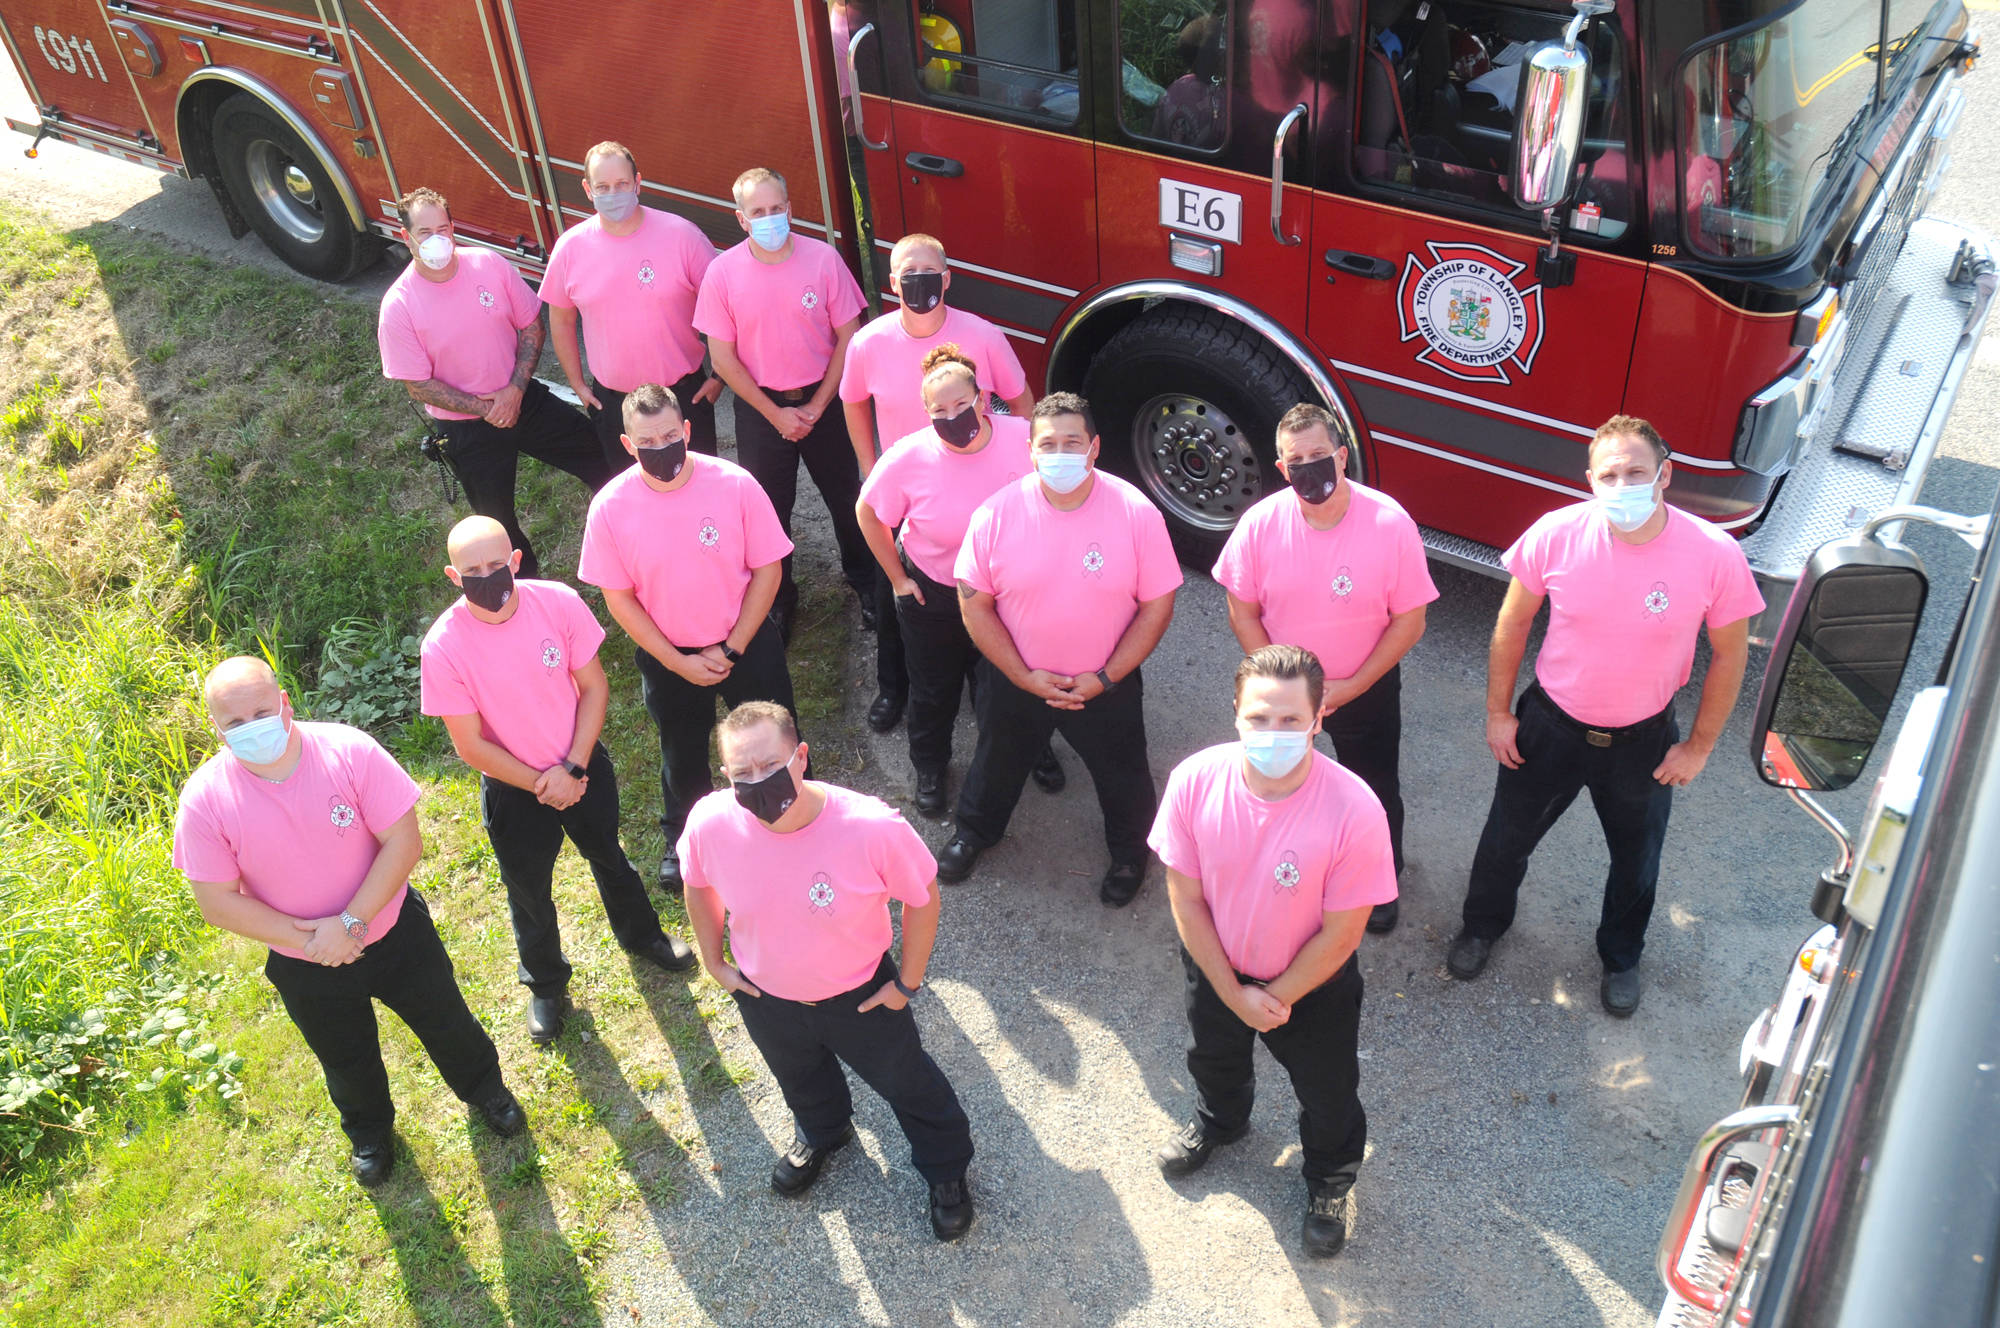 Members of the Township of Langley Fire Department dawn pink for 2020 Breast Cancer Awareness Month. (Jhim Burwell/Special to Langley Advance Times)